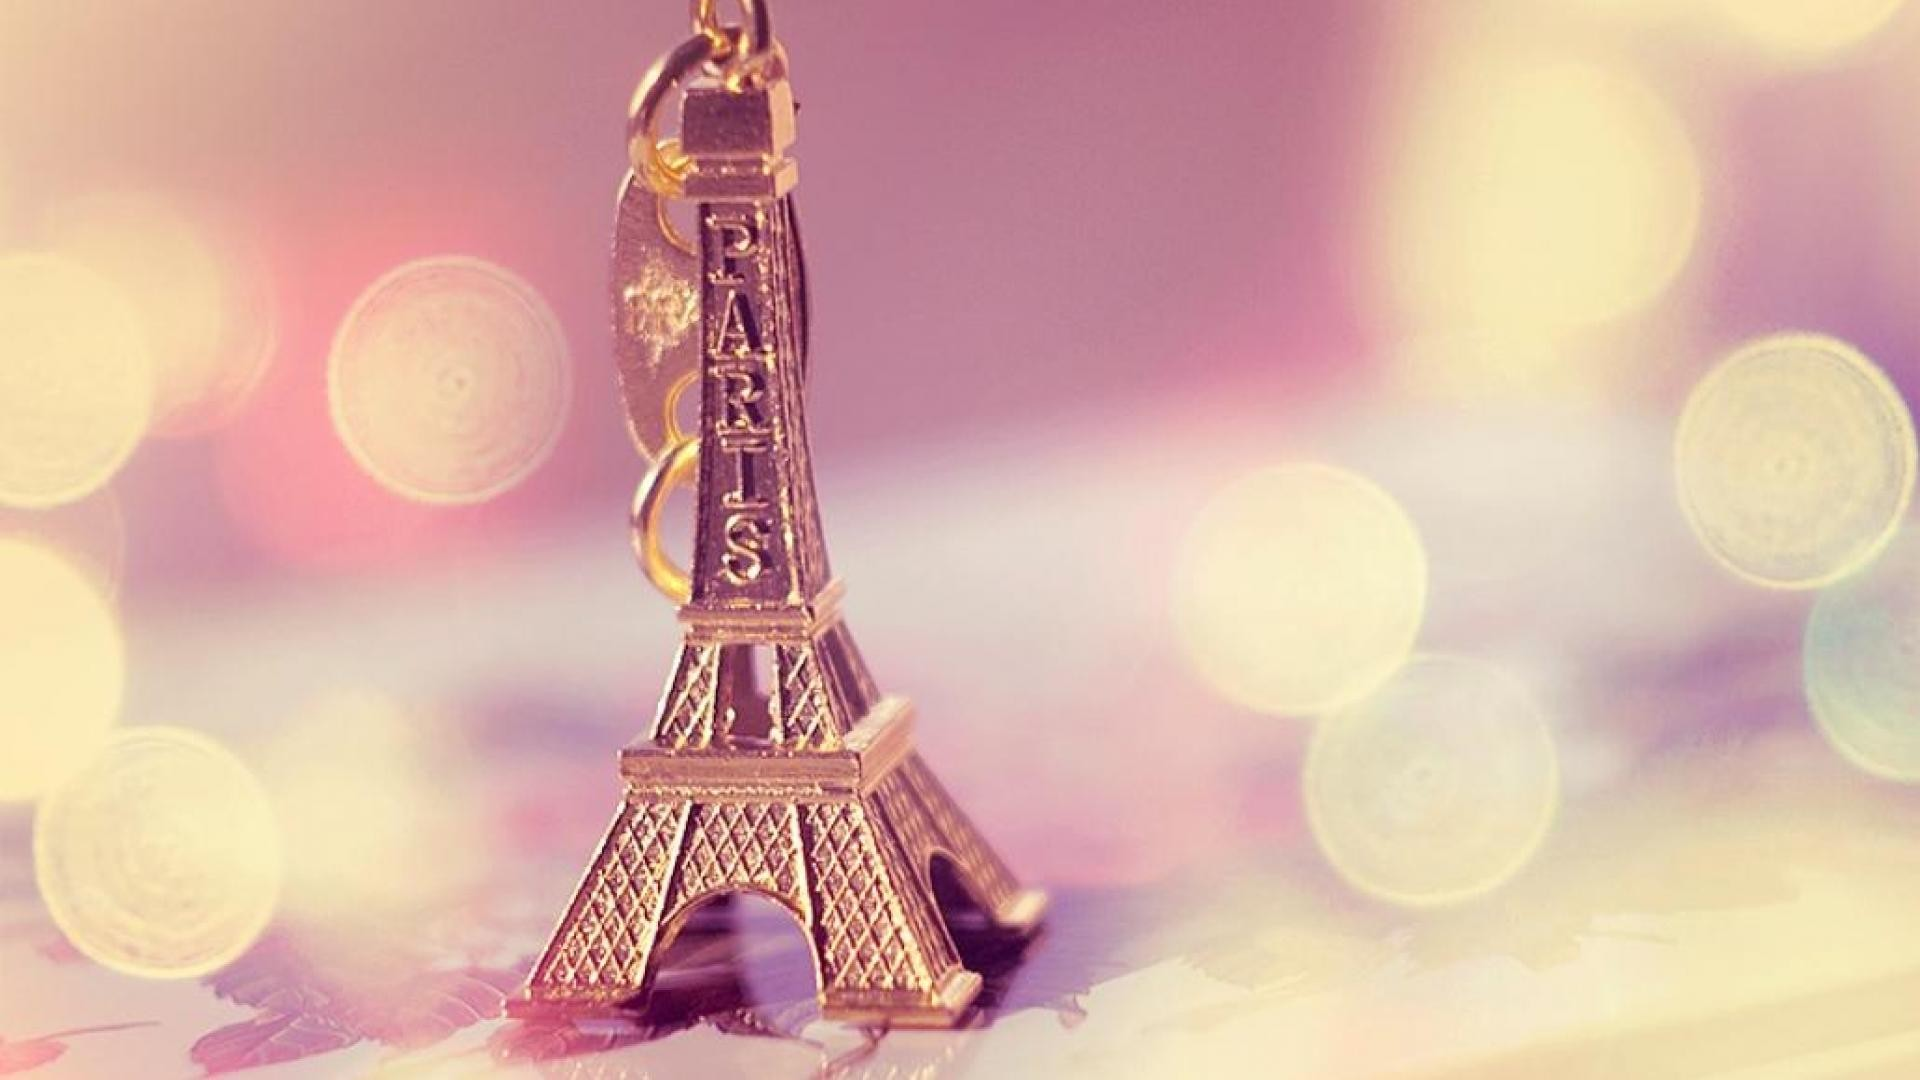 1920x1080 Cute Greetings From Paris Wallpaper